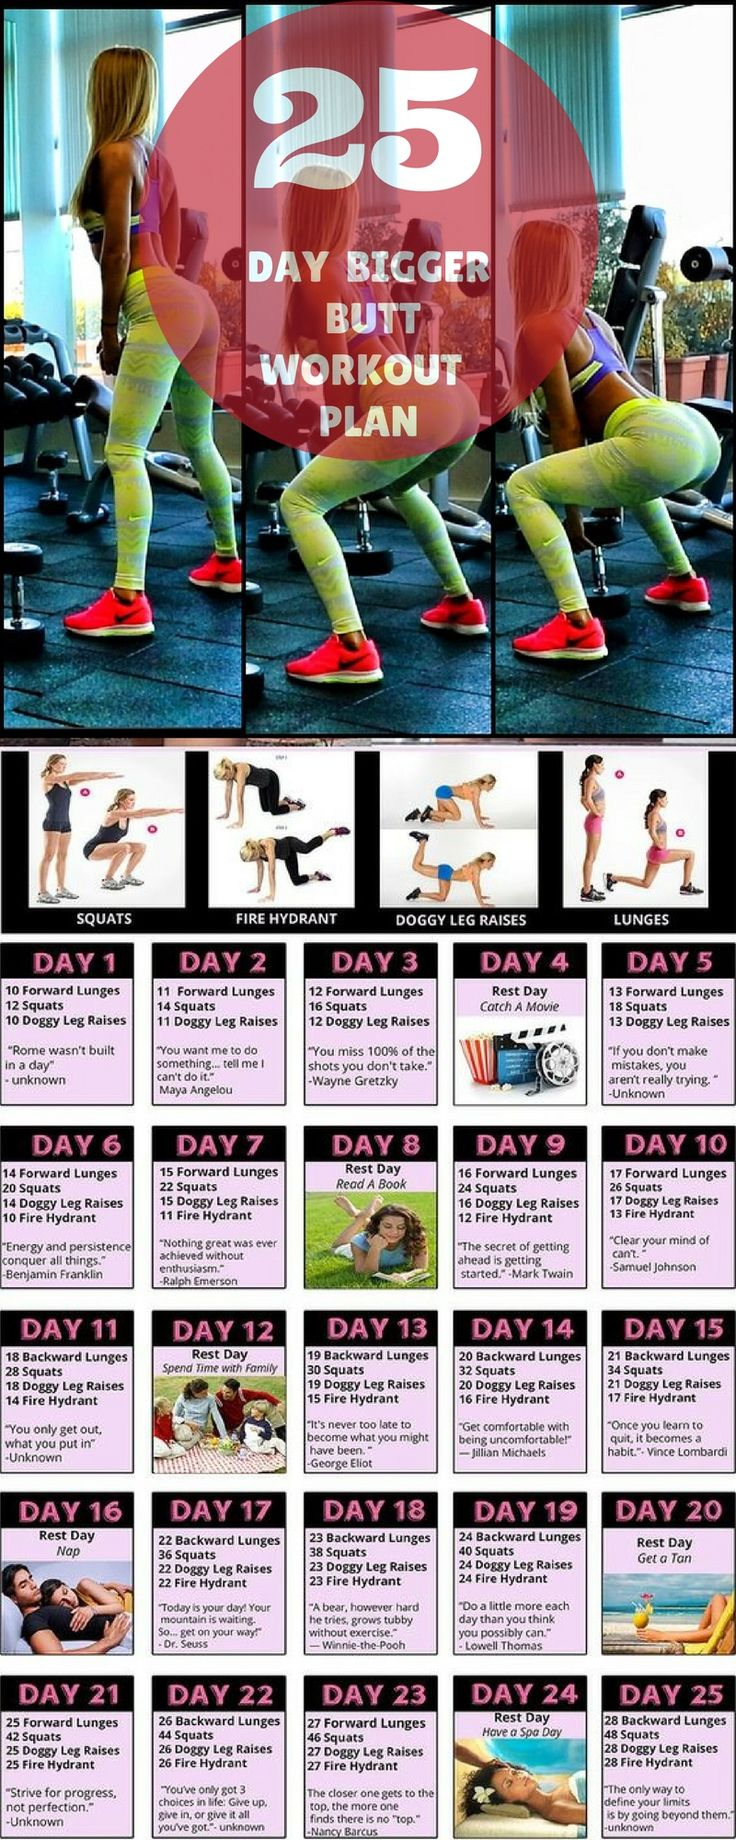 25 DAY BIGGER BUTT WORKOUT PLAN